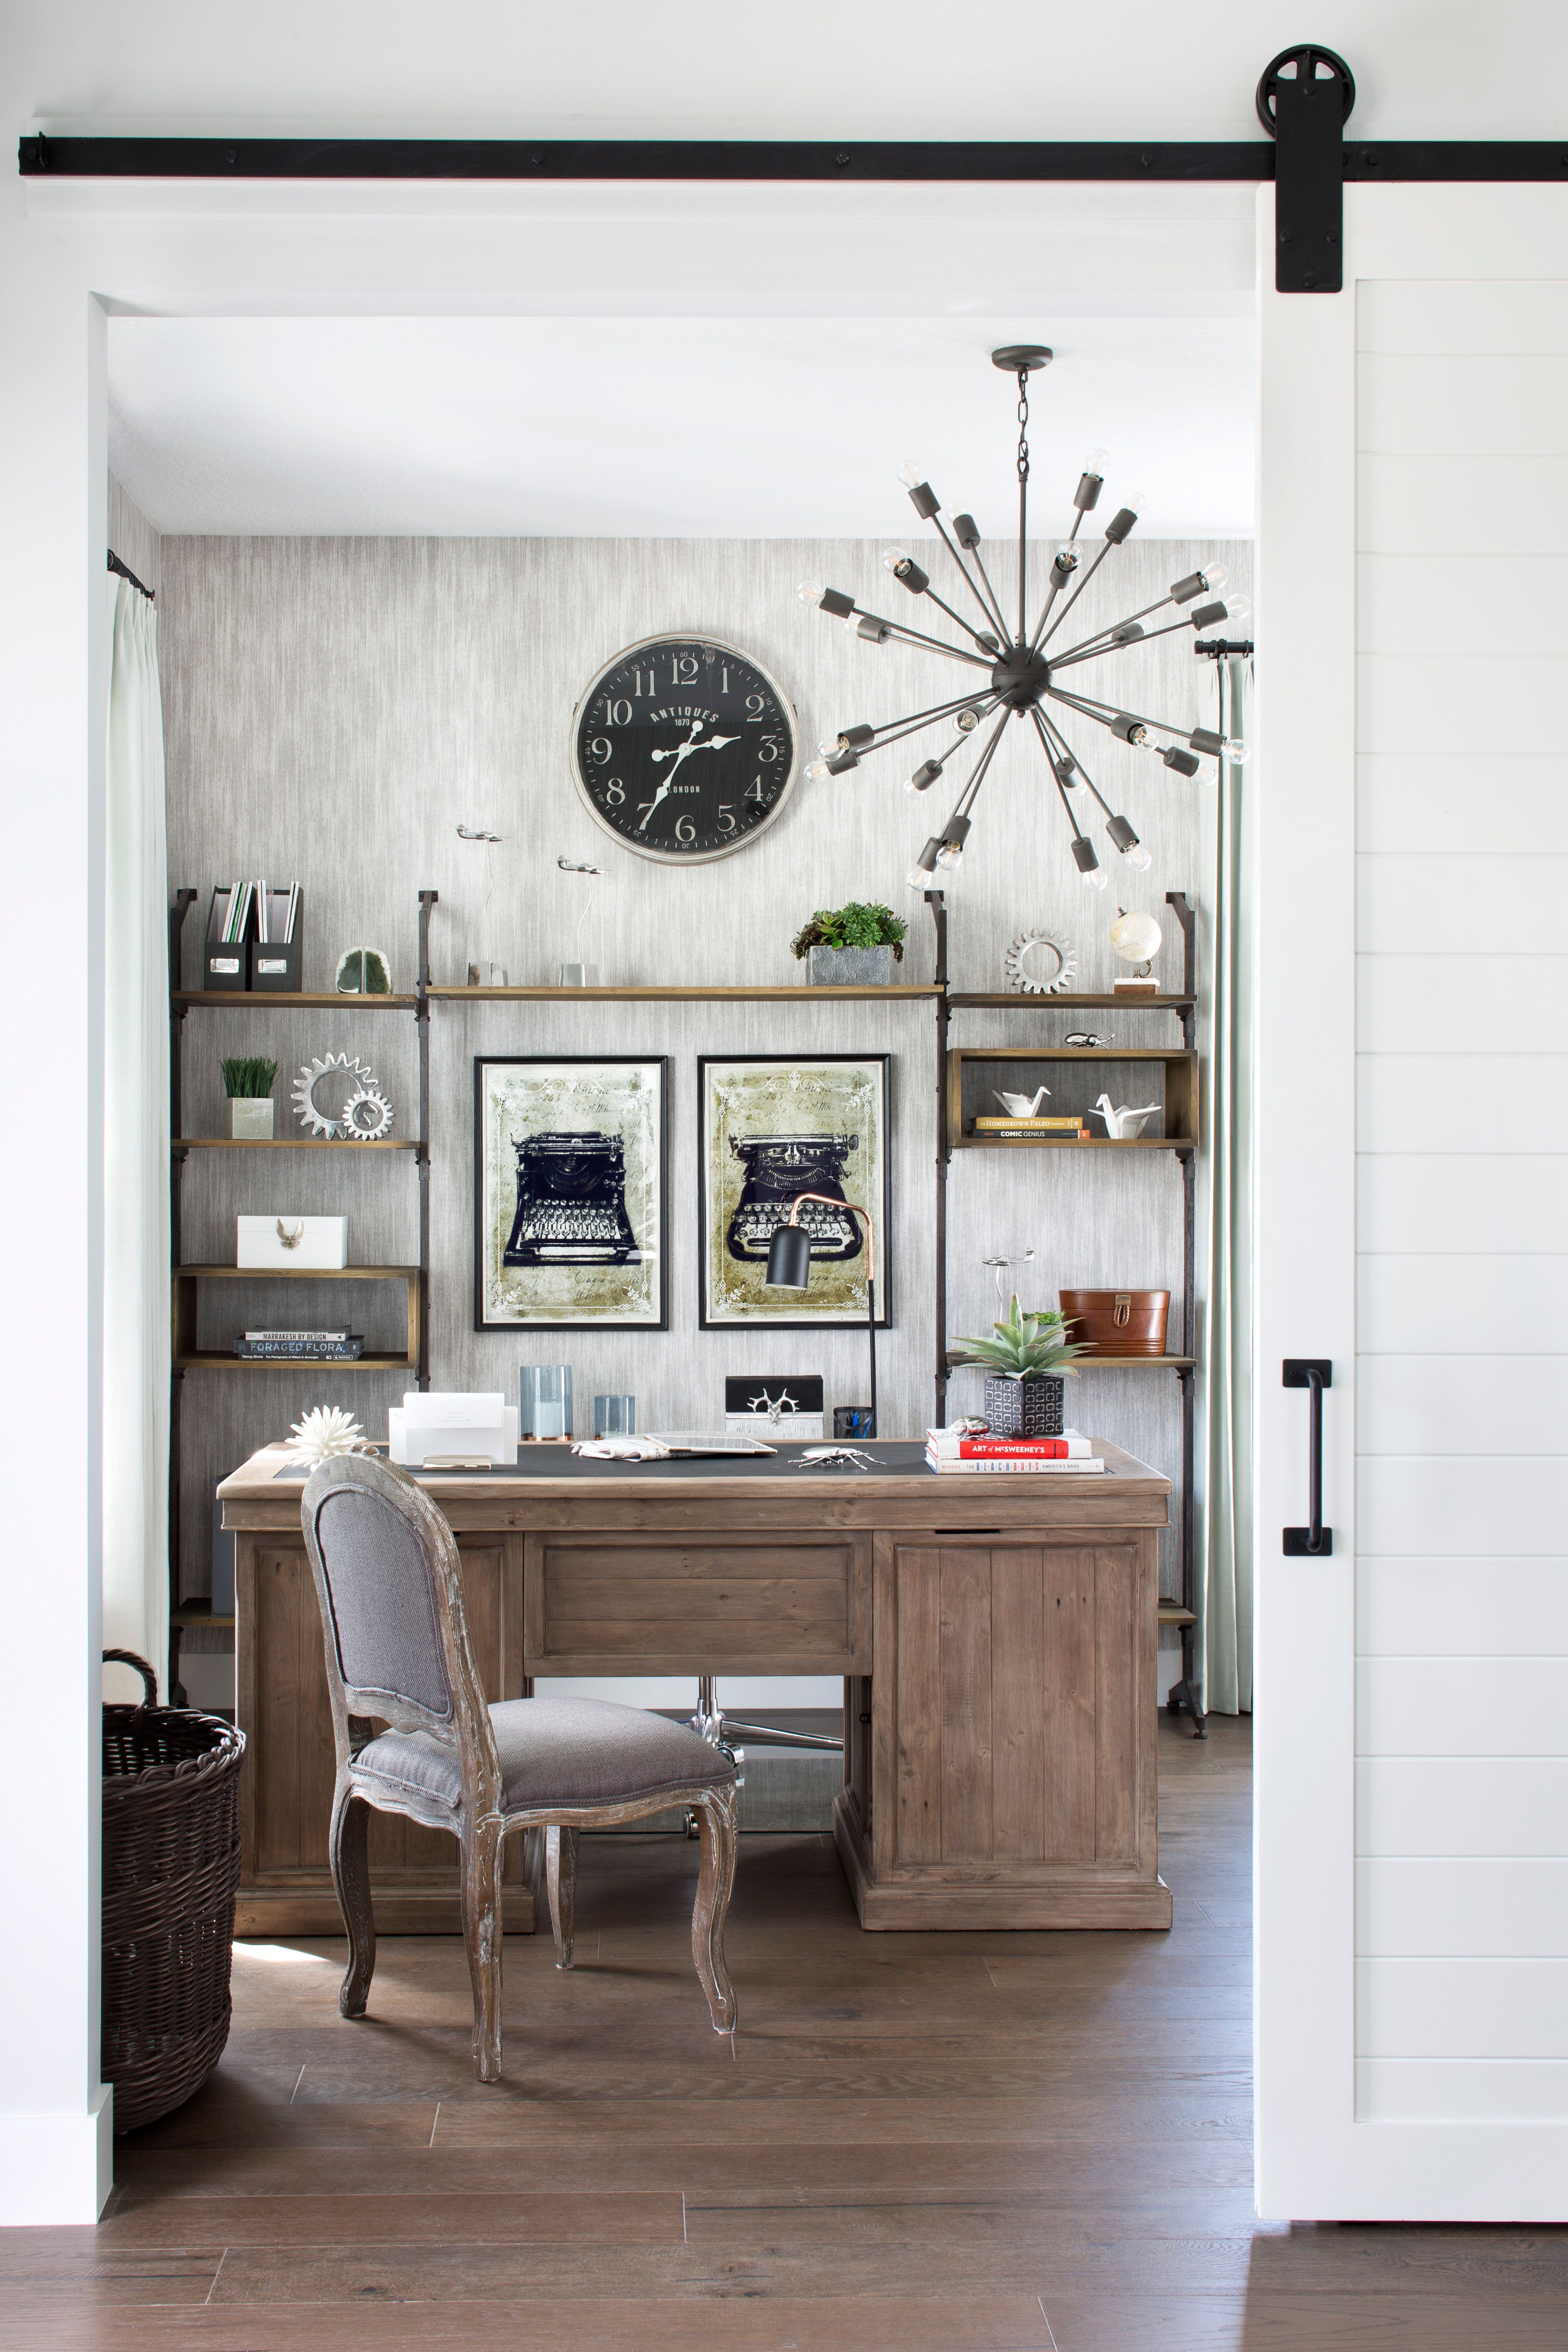 A Neutral Office Design With Modern Accents And Wooden Elements